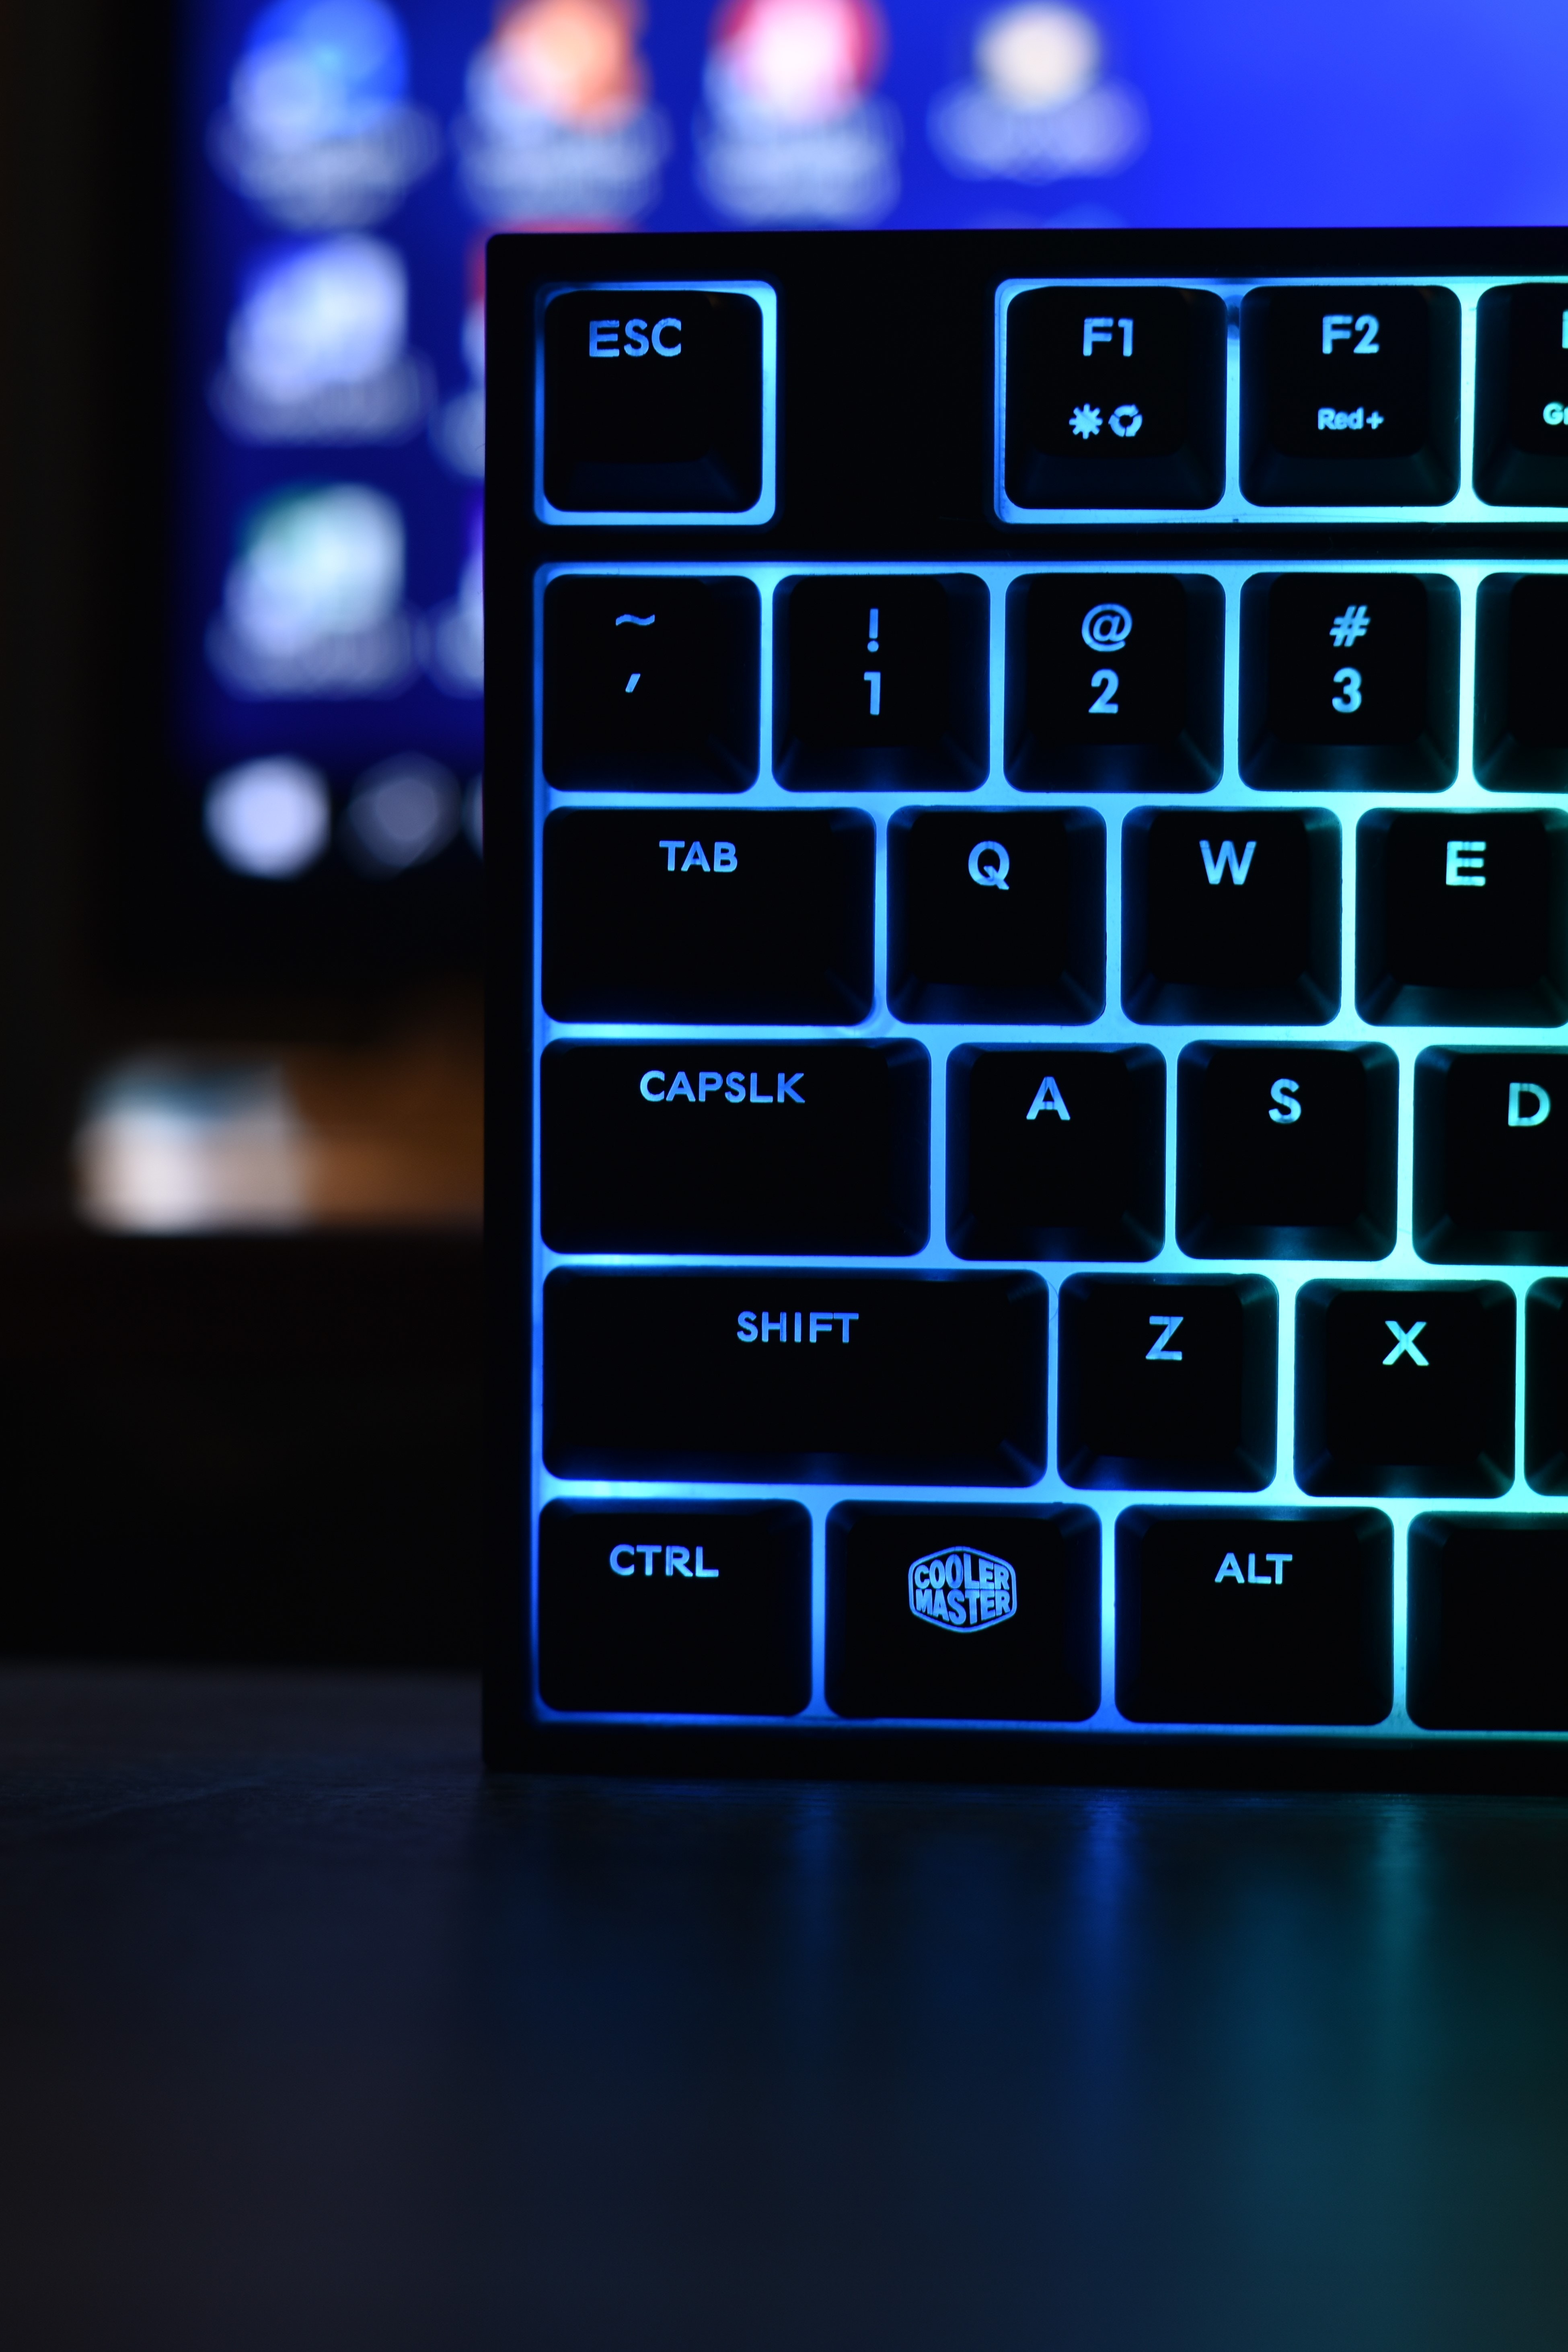 102187 download wallpaper Technology, Symbols, Characters, Backlight, Illumination, Technologies, Keys, Letters, Keyboard screensavers and pictures for free